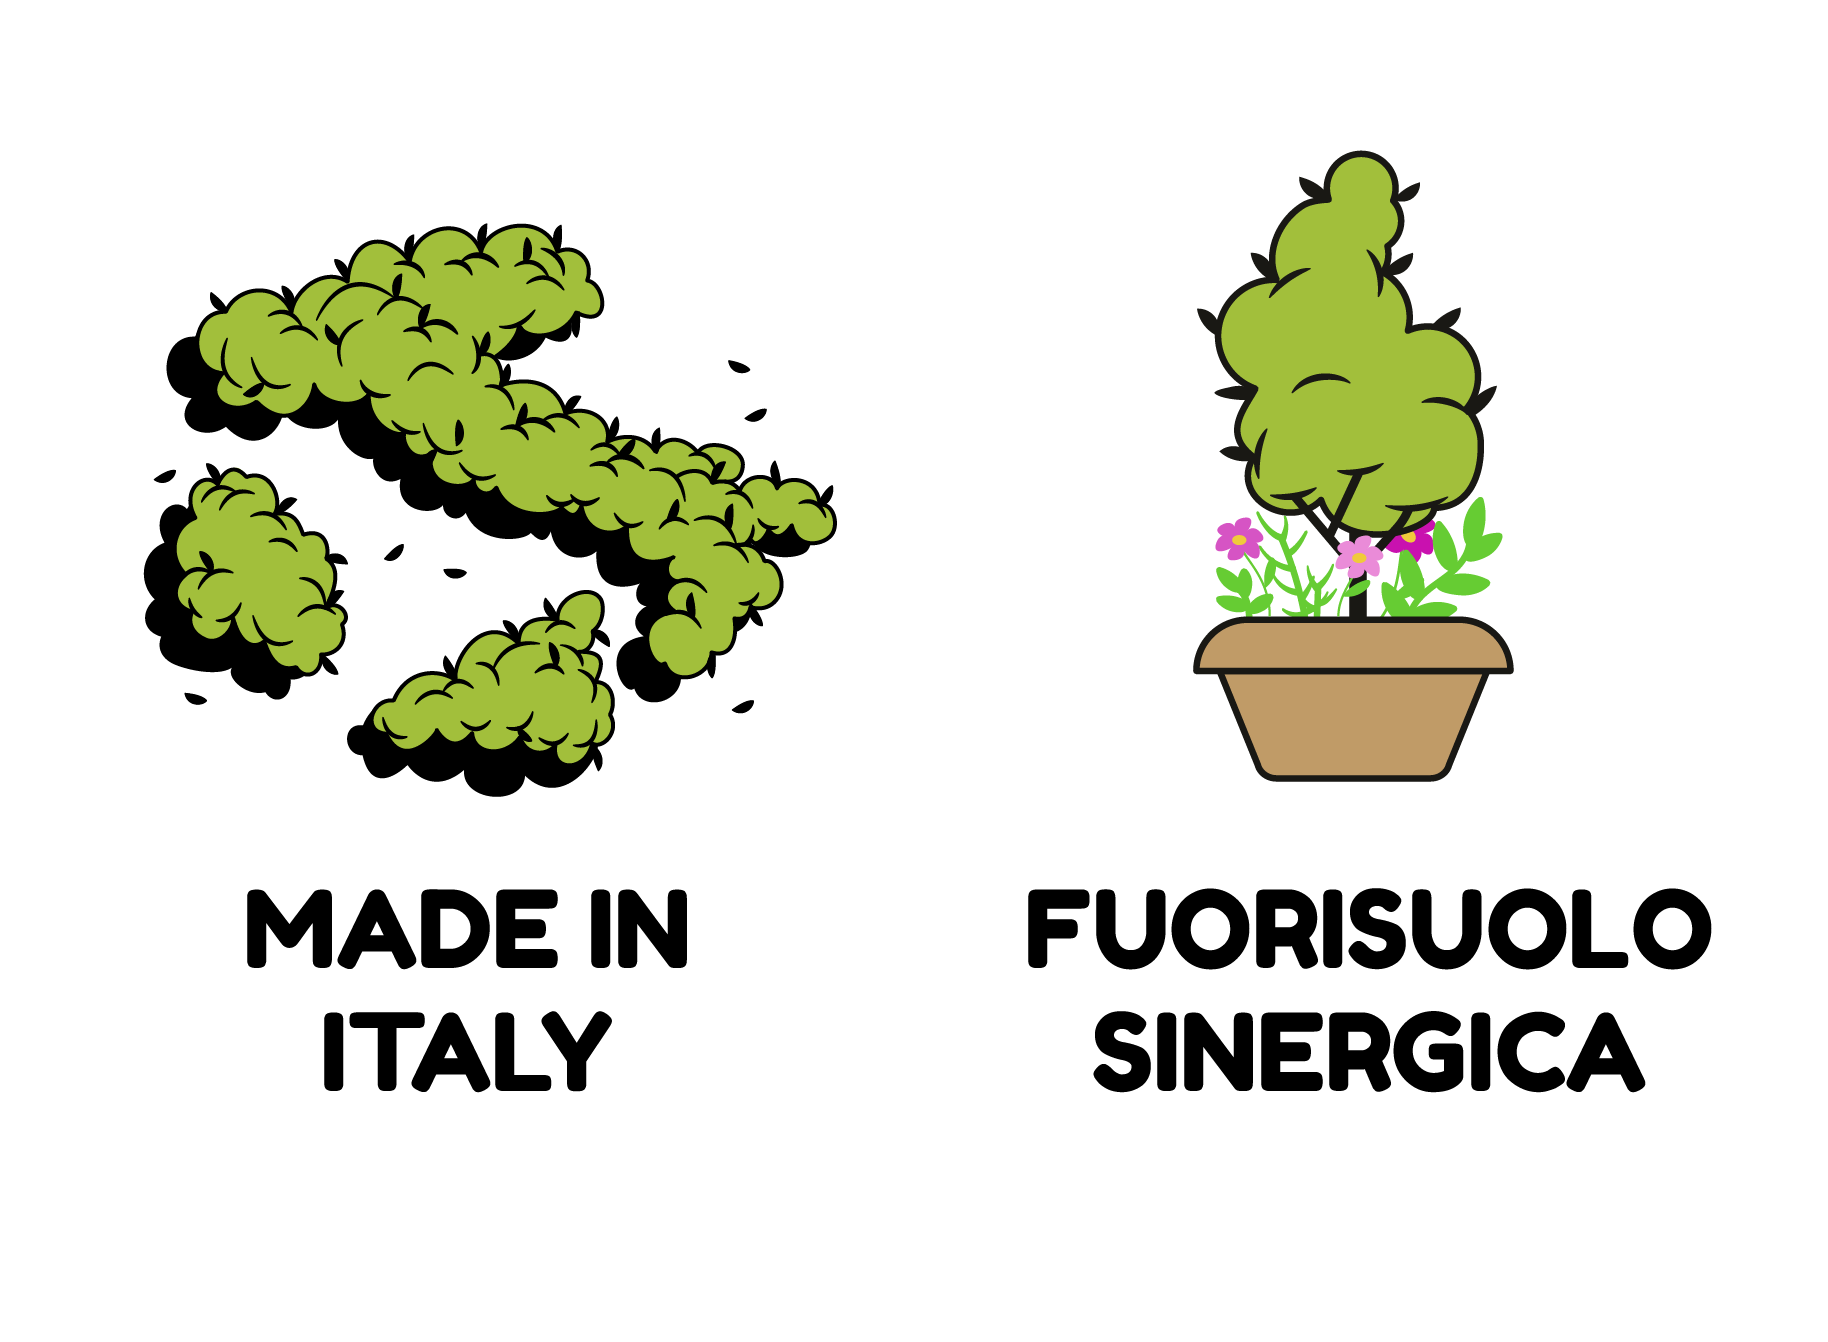 MADE IN ITALY- FUORISUOLO SINERGICA